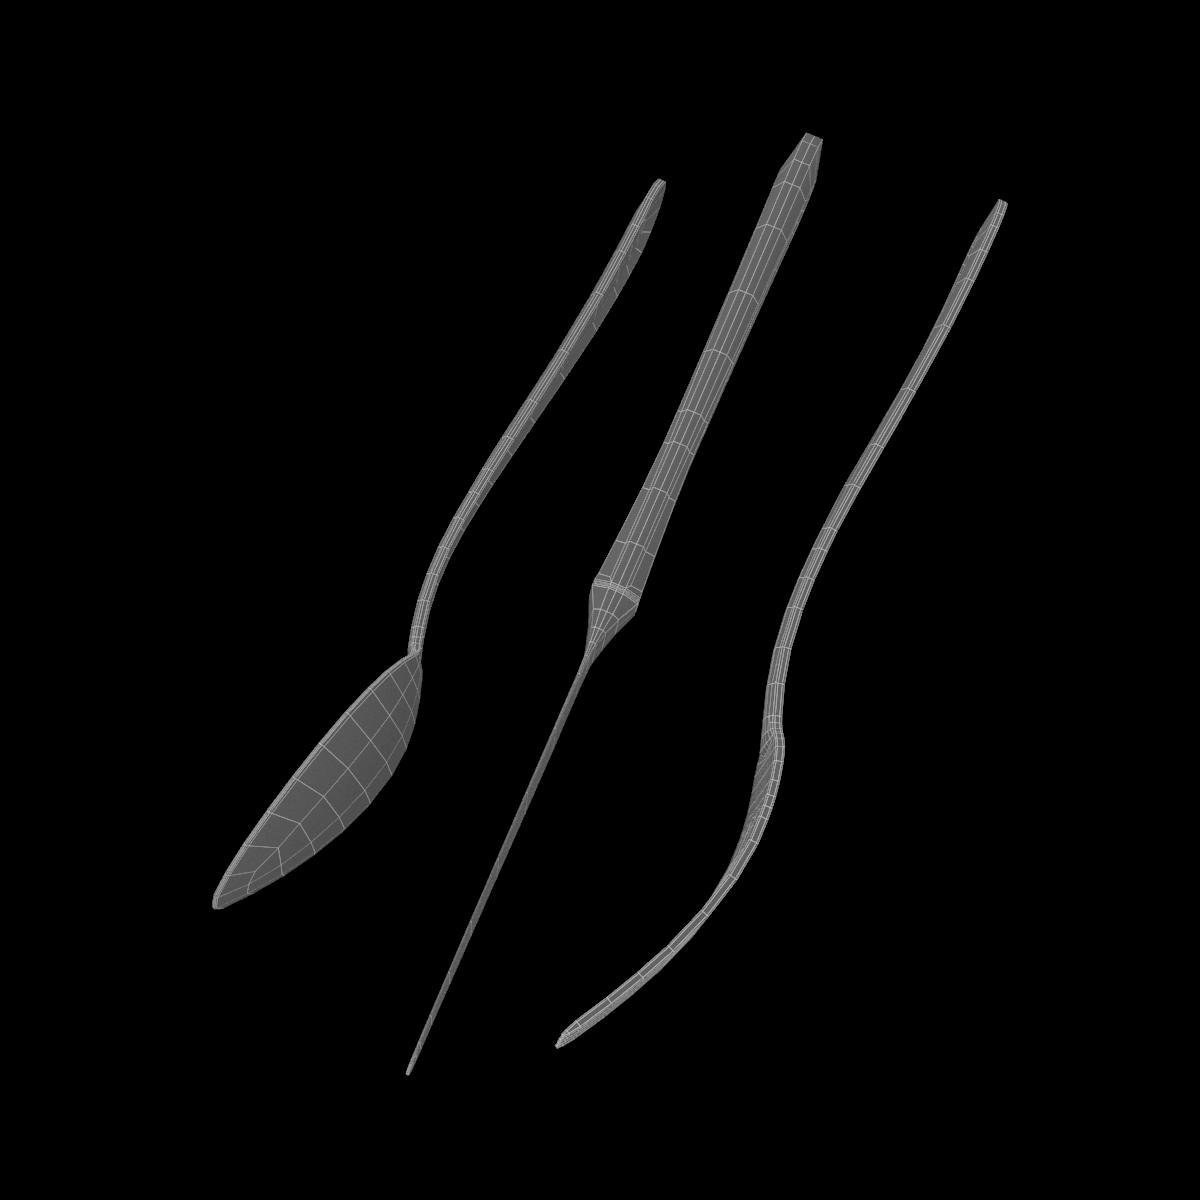 table dinner knife, fork, spoon classic cutlery 3d model 3ds max fbx c4d ma mb  obj 284637